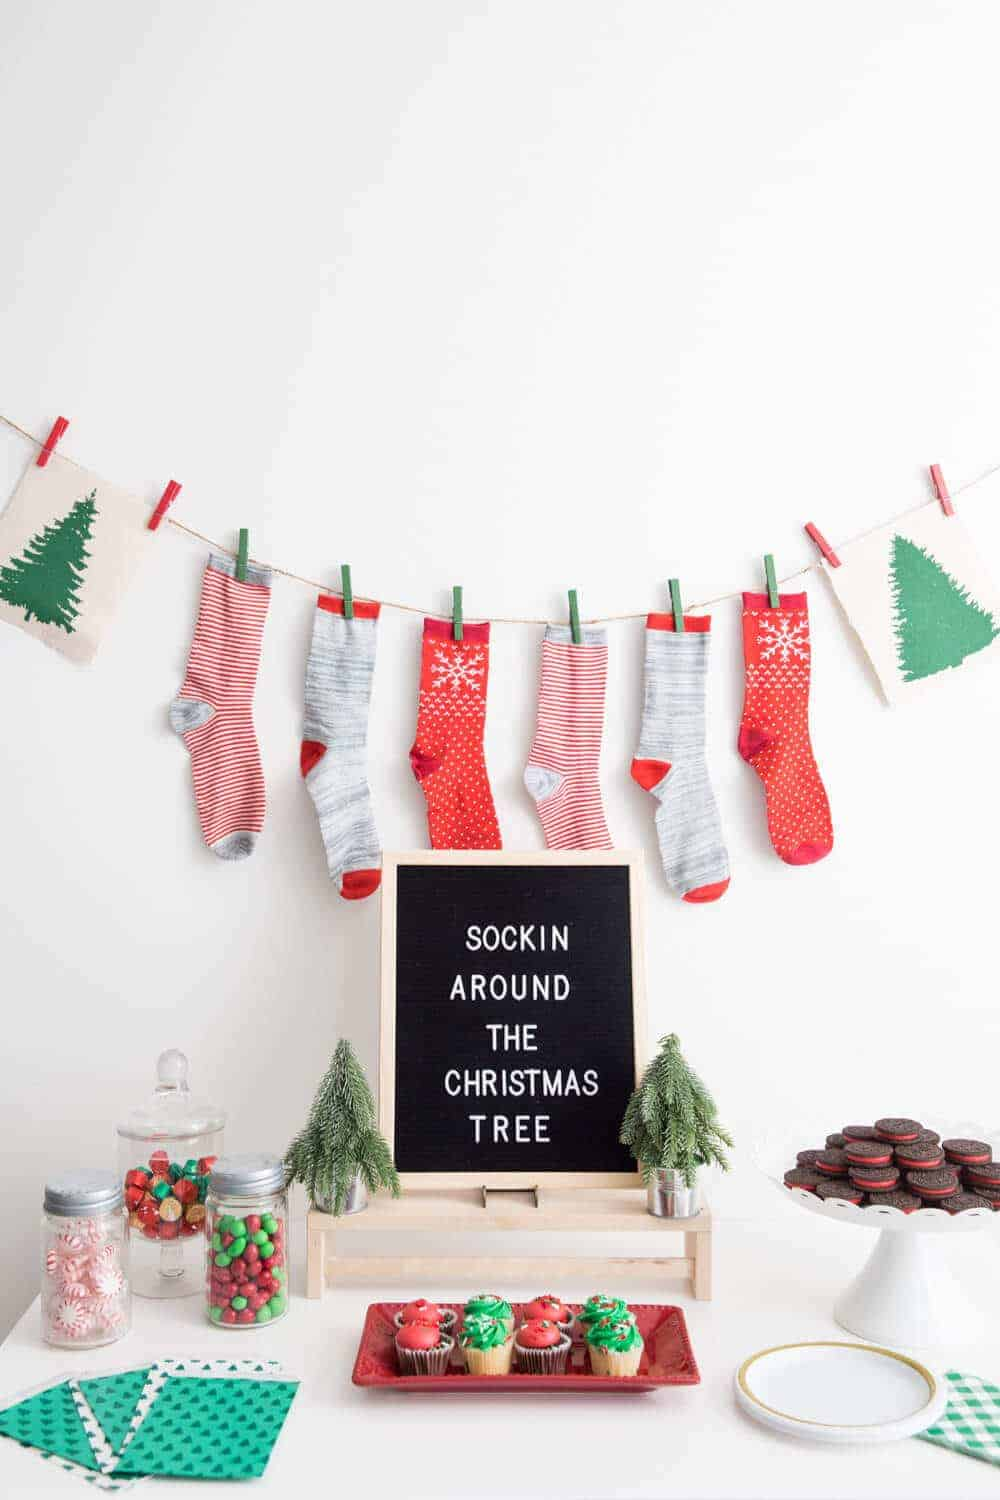 How to Throw An Ugly Christmas Sock Party-An Original ...